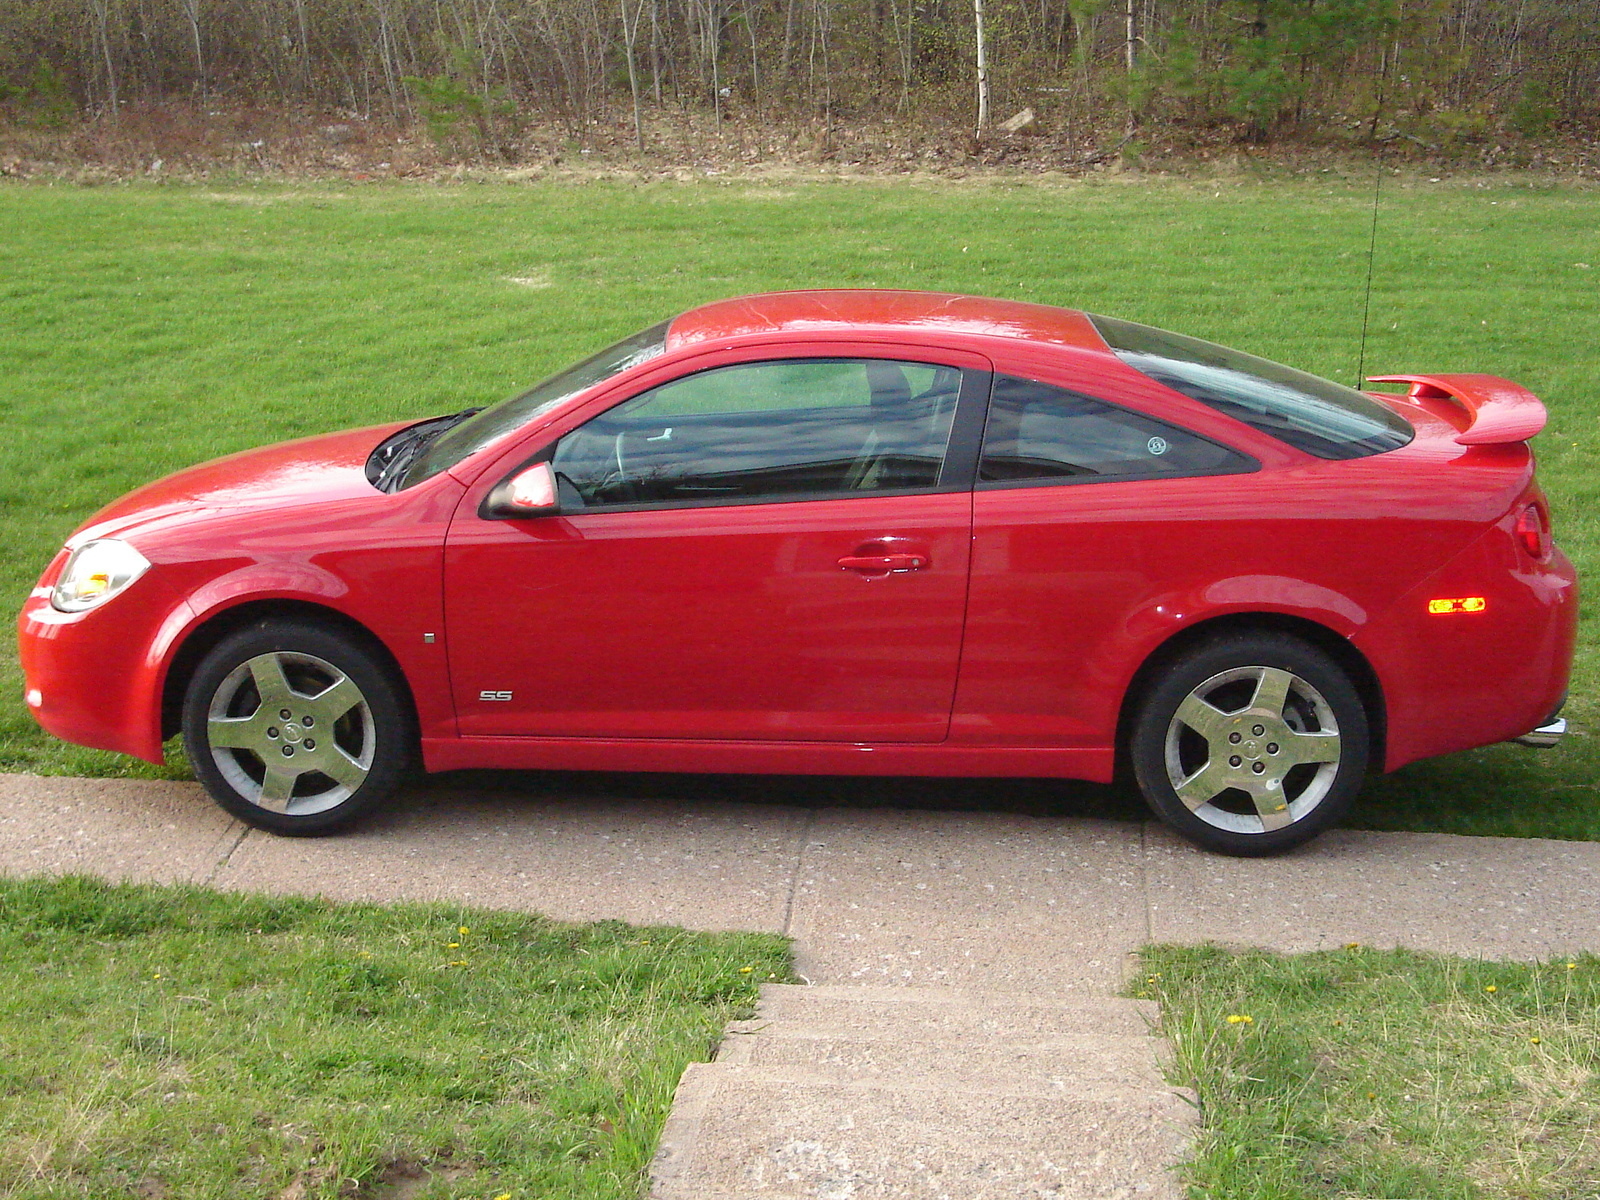 2006 chevy cobalt ss specs pictures to pin on pinterest. Black Bedroom Furniture Sets. Home Design Ideas